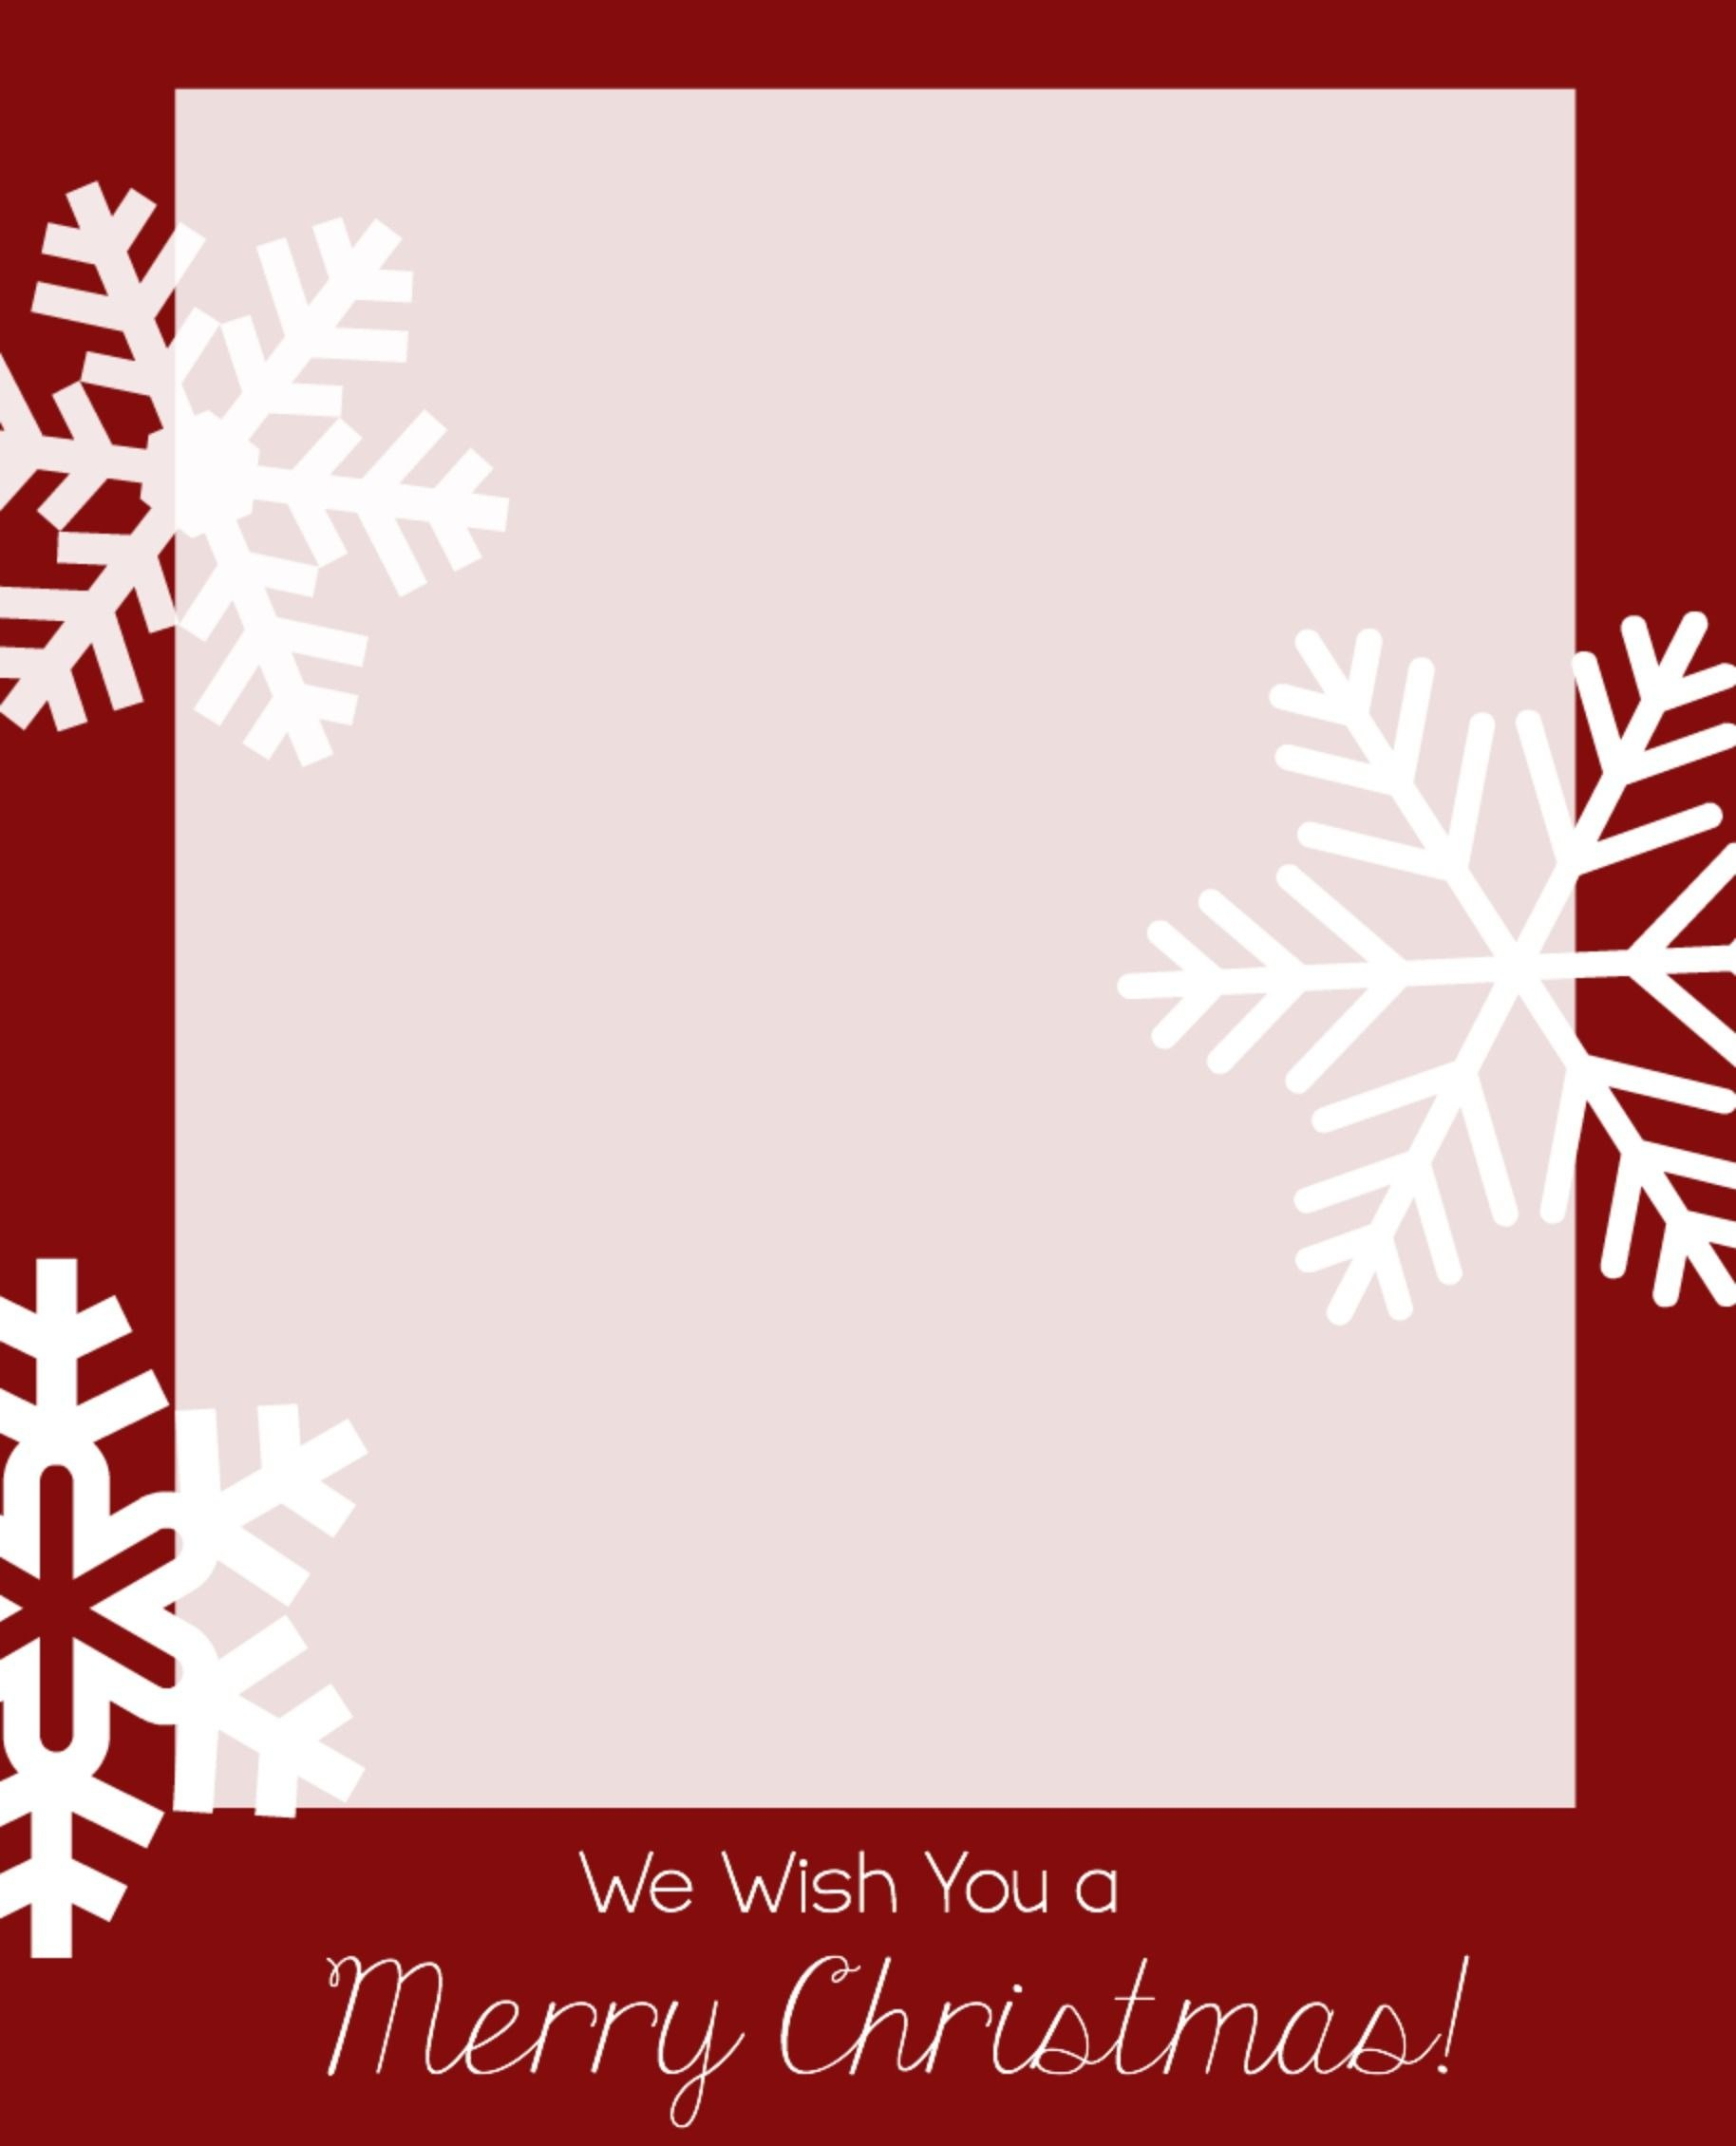 Template Ideas Holiday Card Templates Remarkable Free Christmas Intended For Christmas Photo Cards Templates Free Downloads